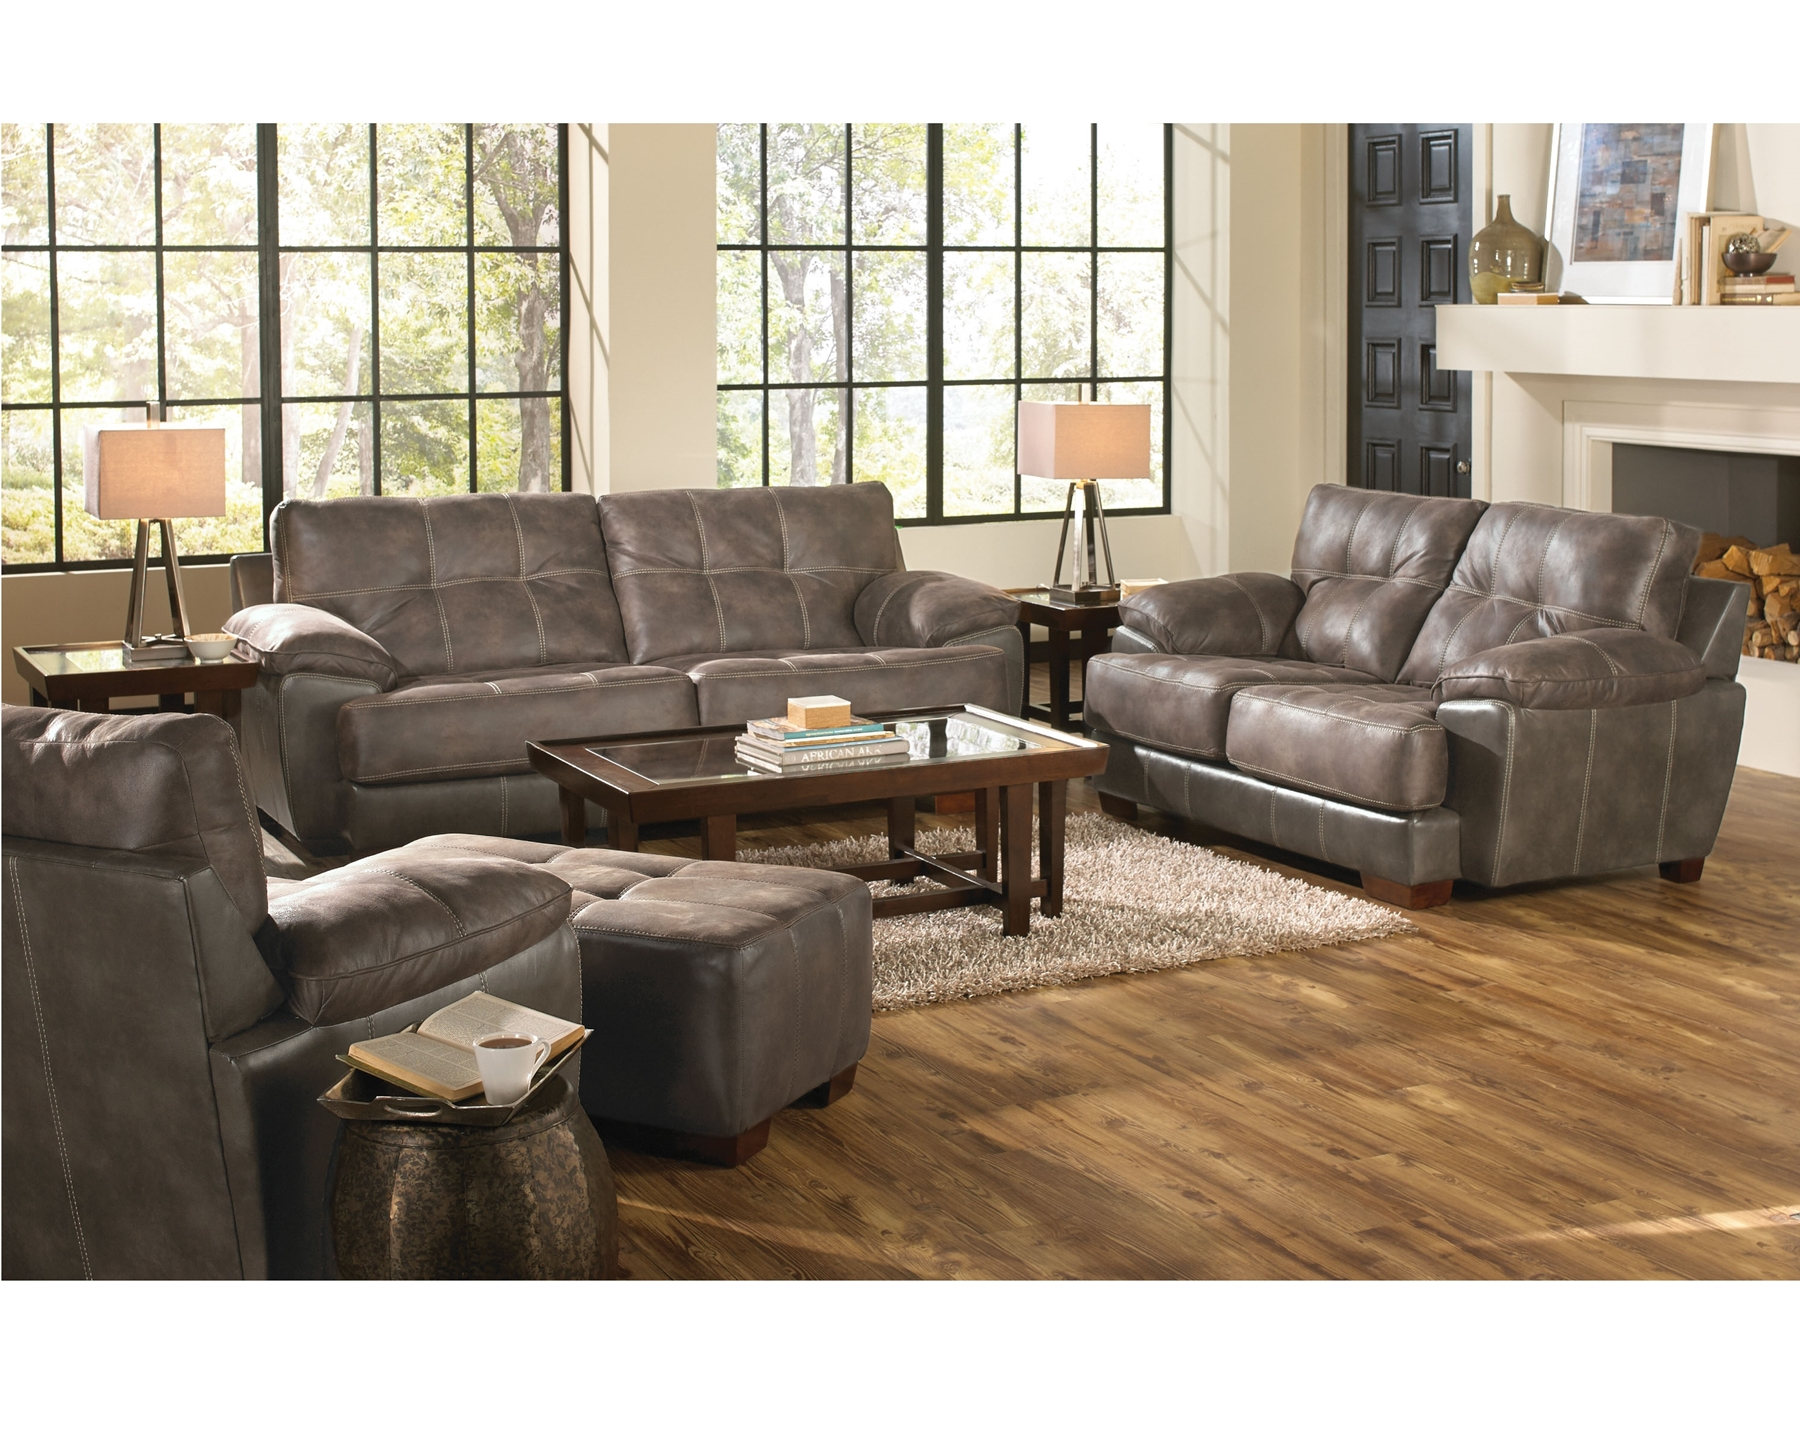 drummond grand leather sofa beige sectional sleeper drummon and loveseat  mac 39s furniture